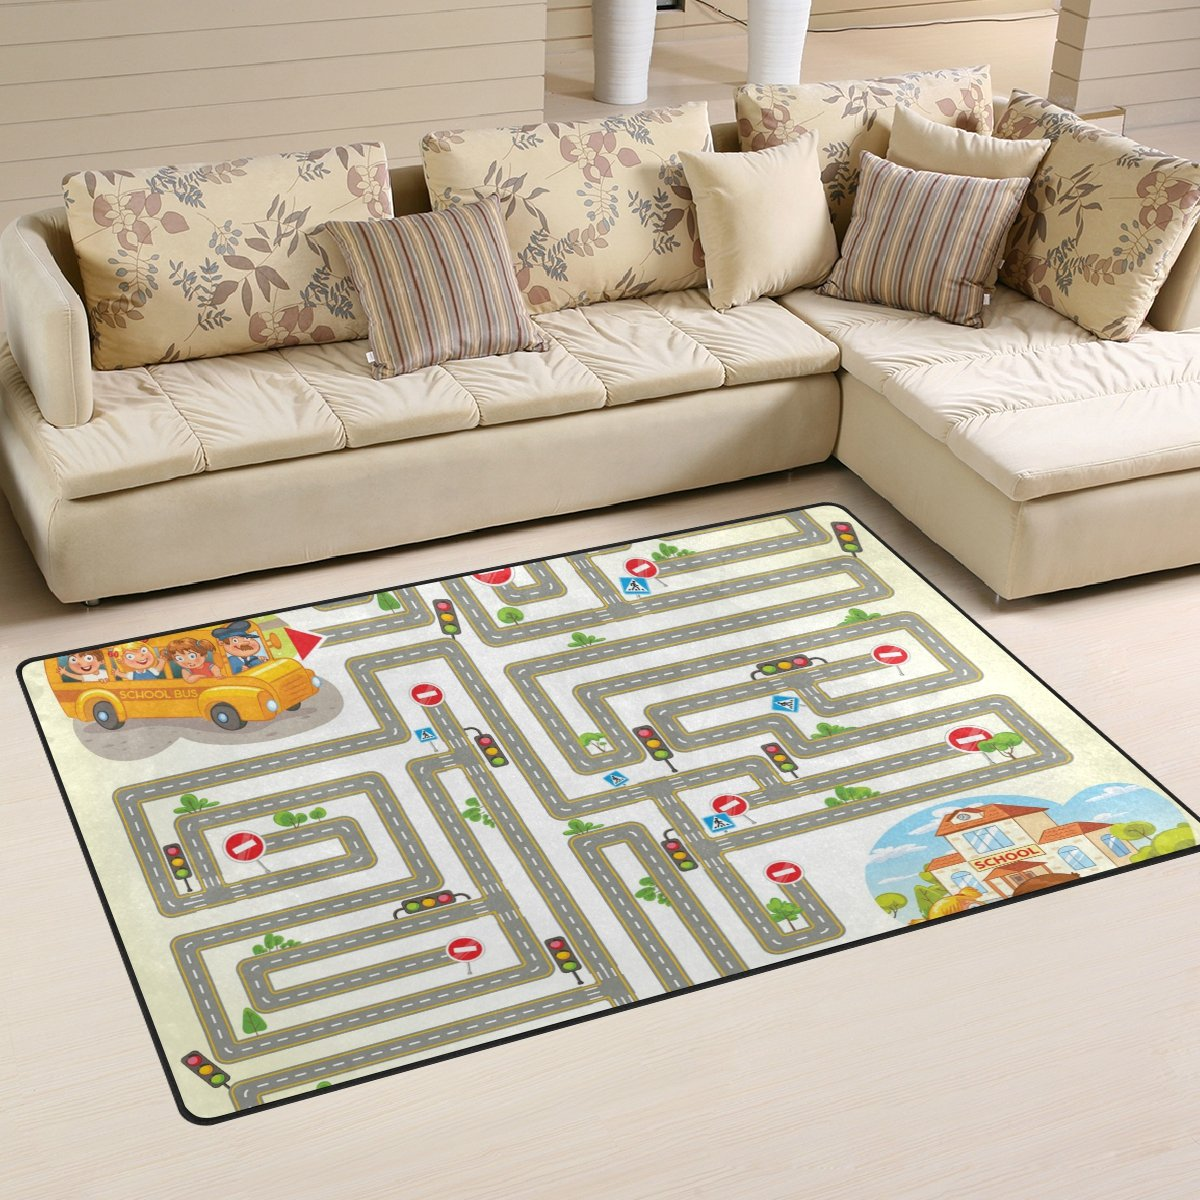 WellLee Area Rug,School Bus Transport Maze Game Floor Rug Non-slip Doormat for Living Dining Dorm Room Bedroom Decor 60x39 Inch